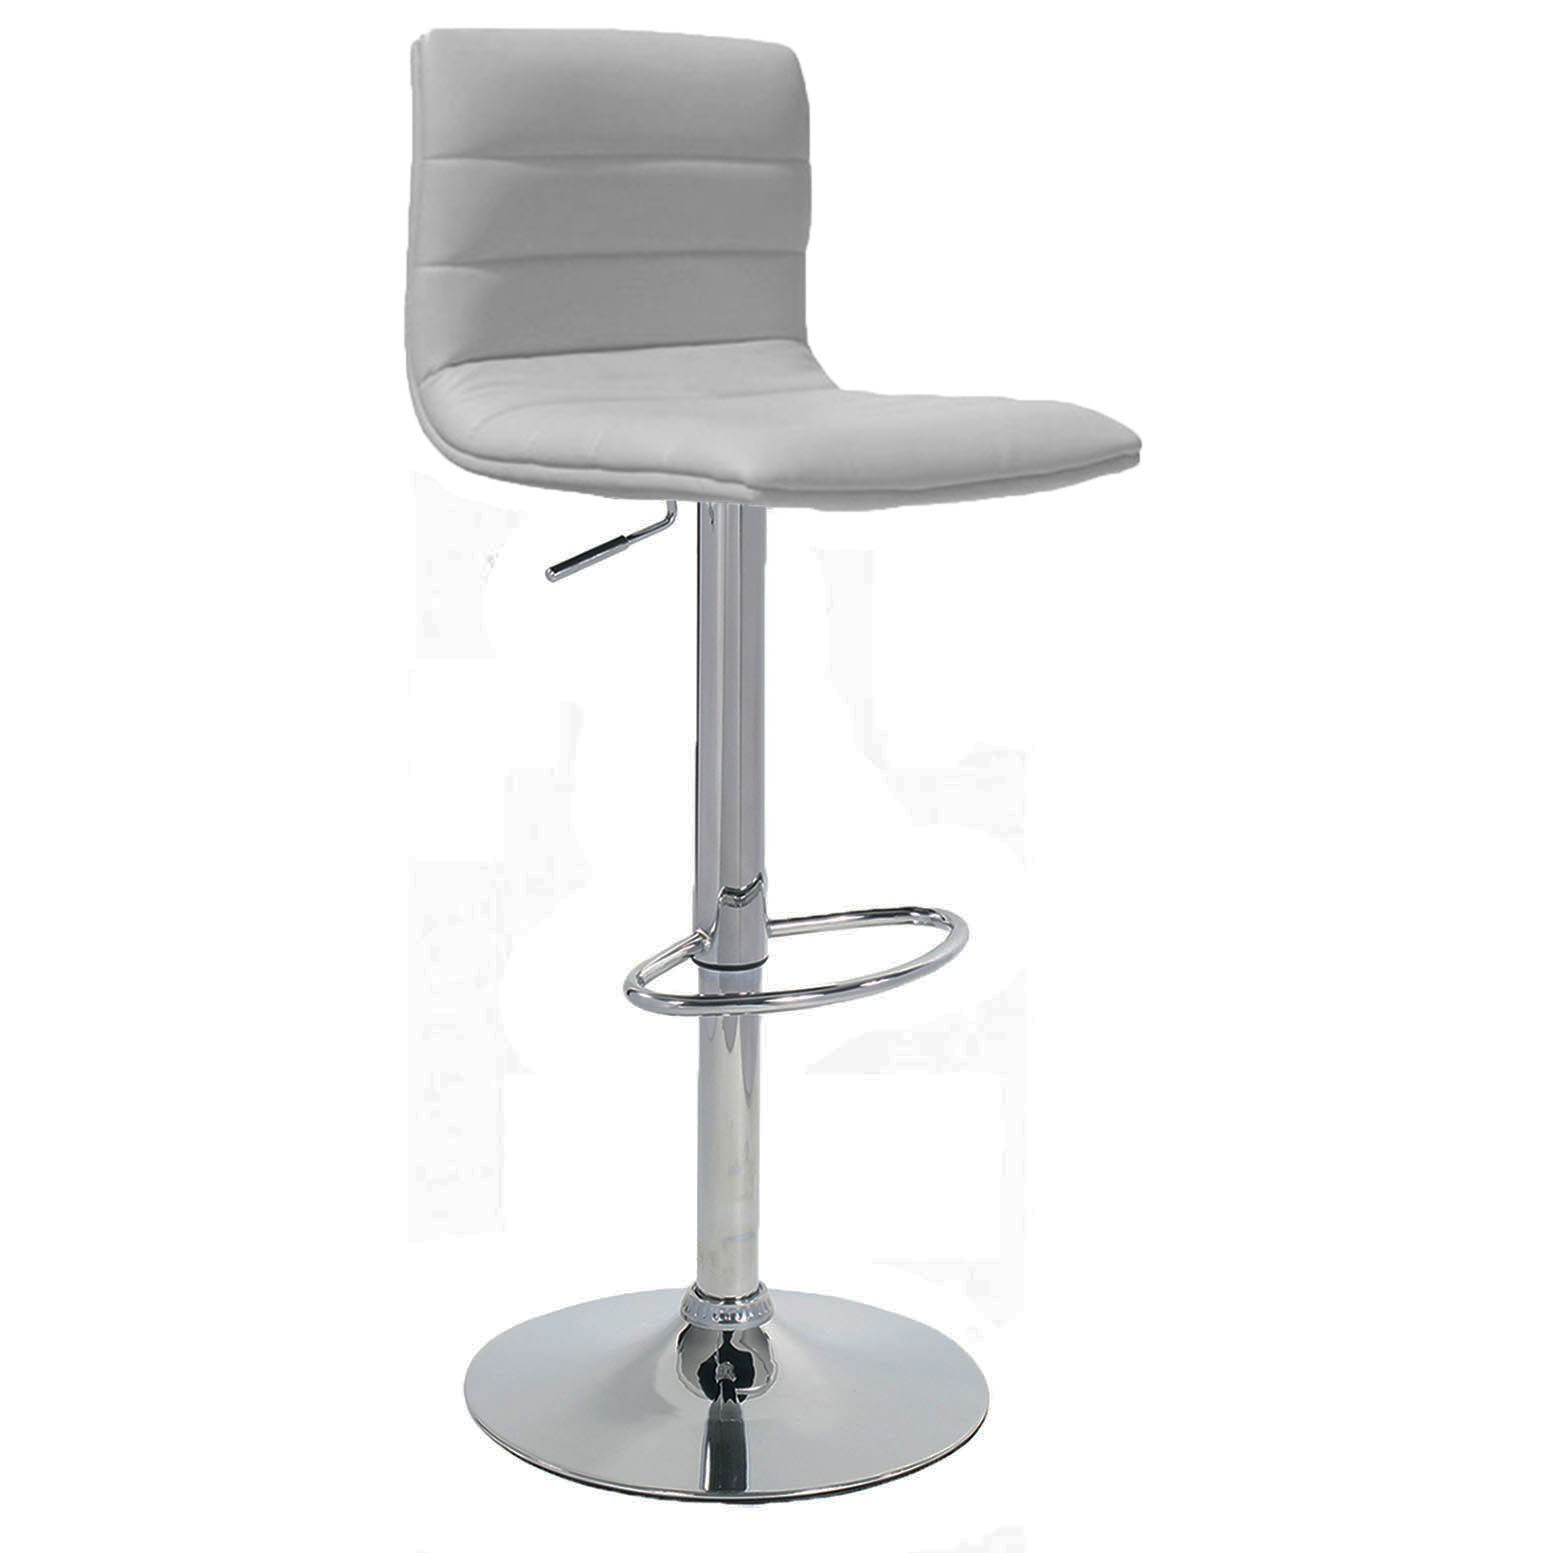 Aldo Bar Stool - White